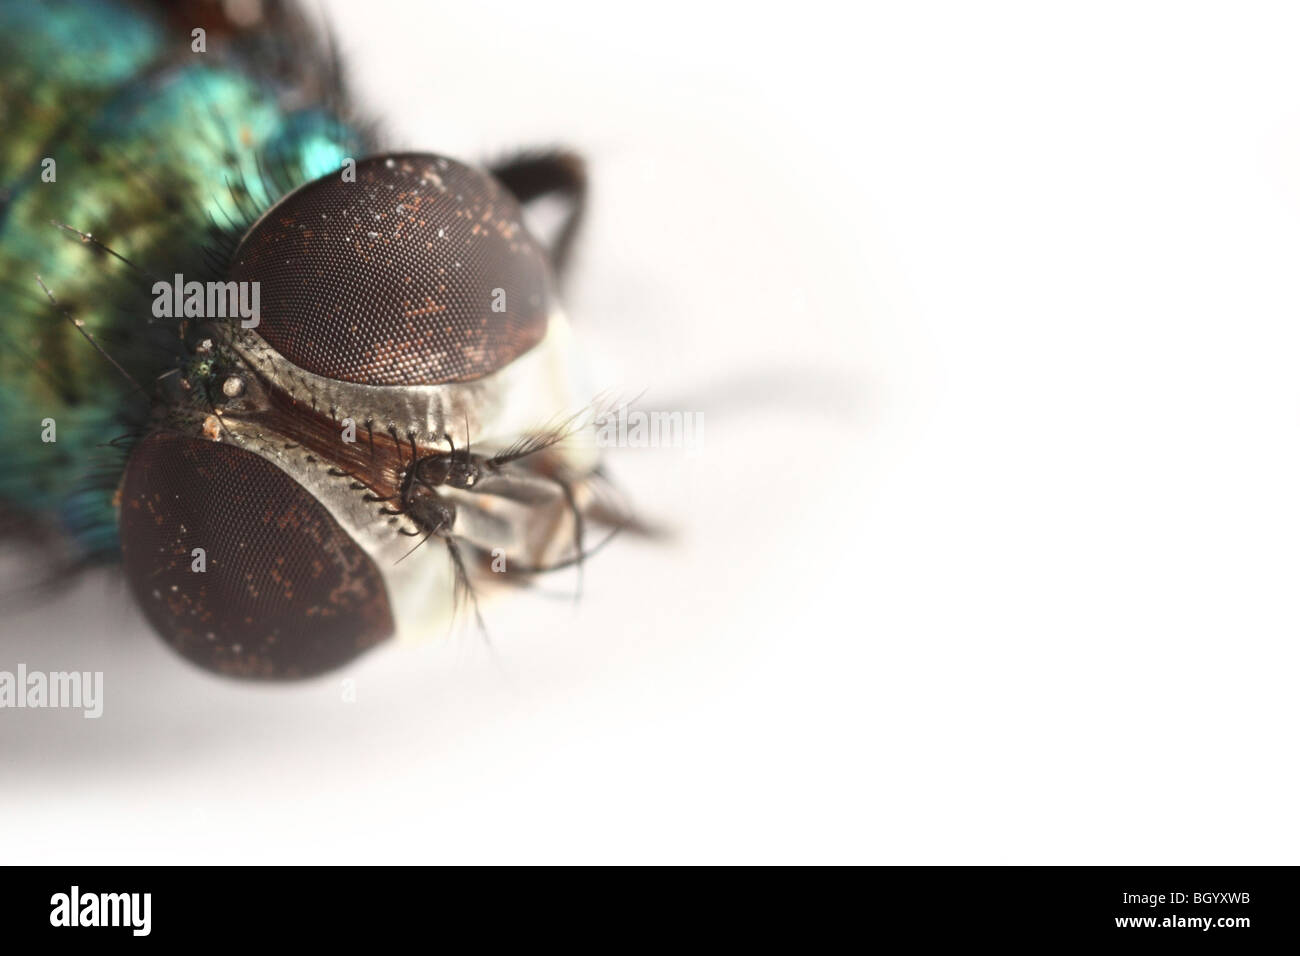 Dead blow fly - Stock Image